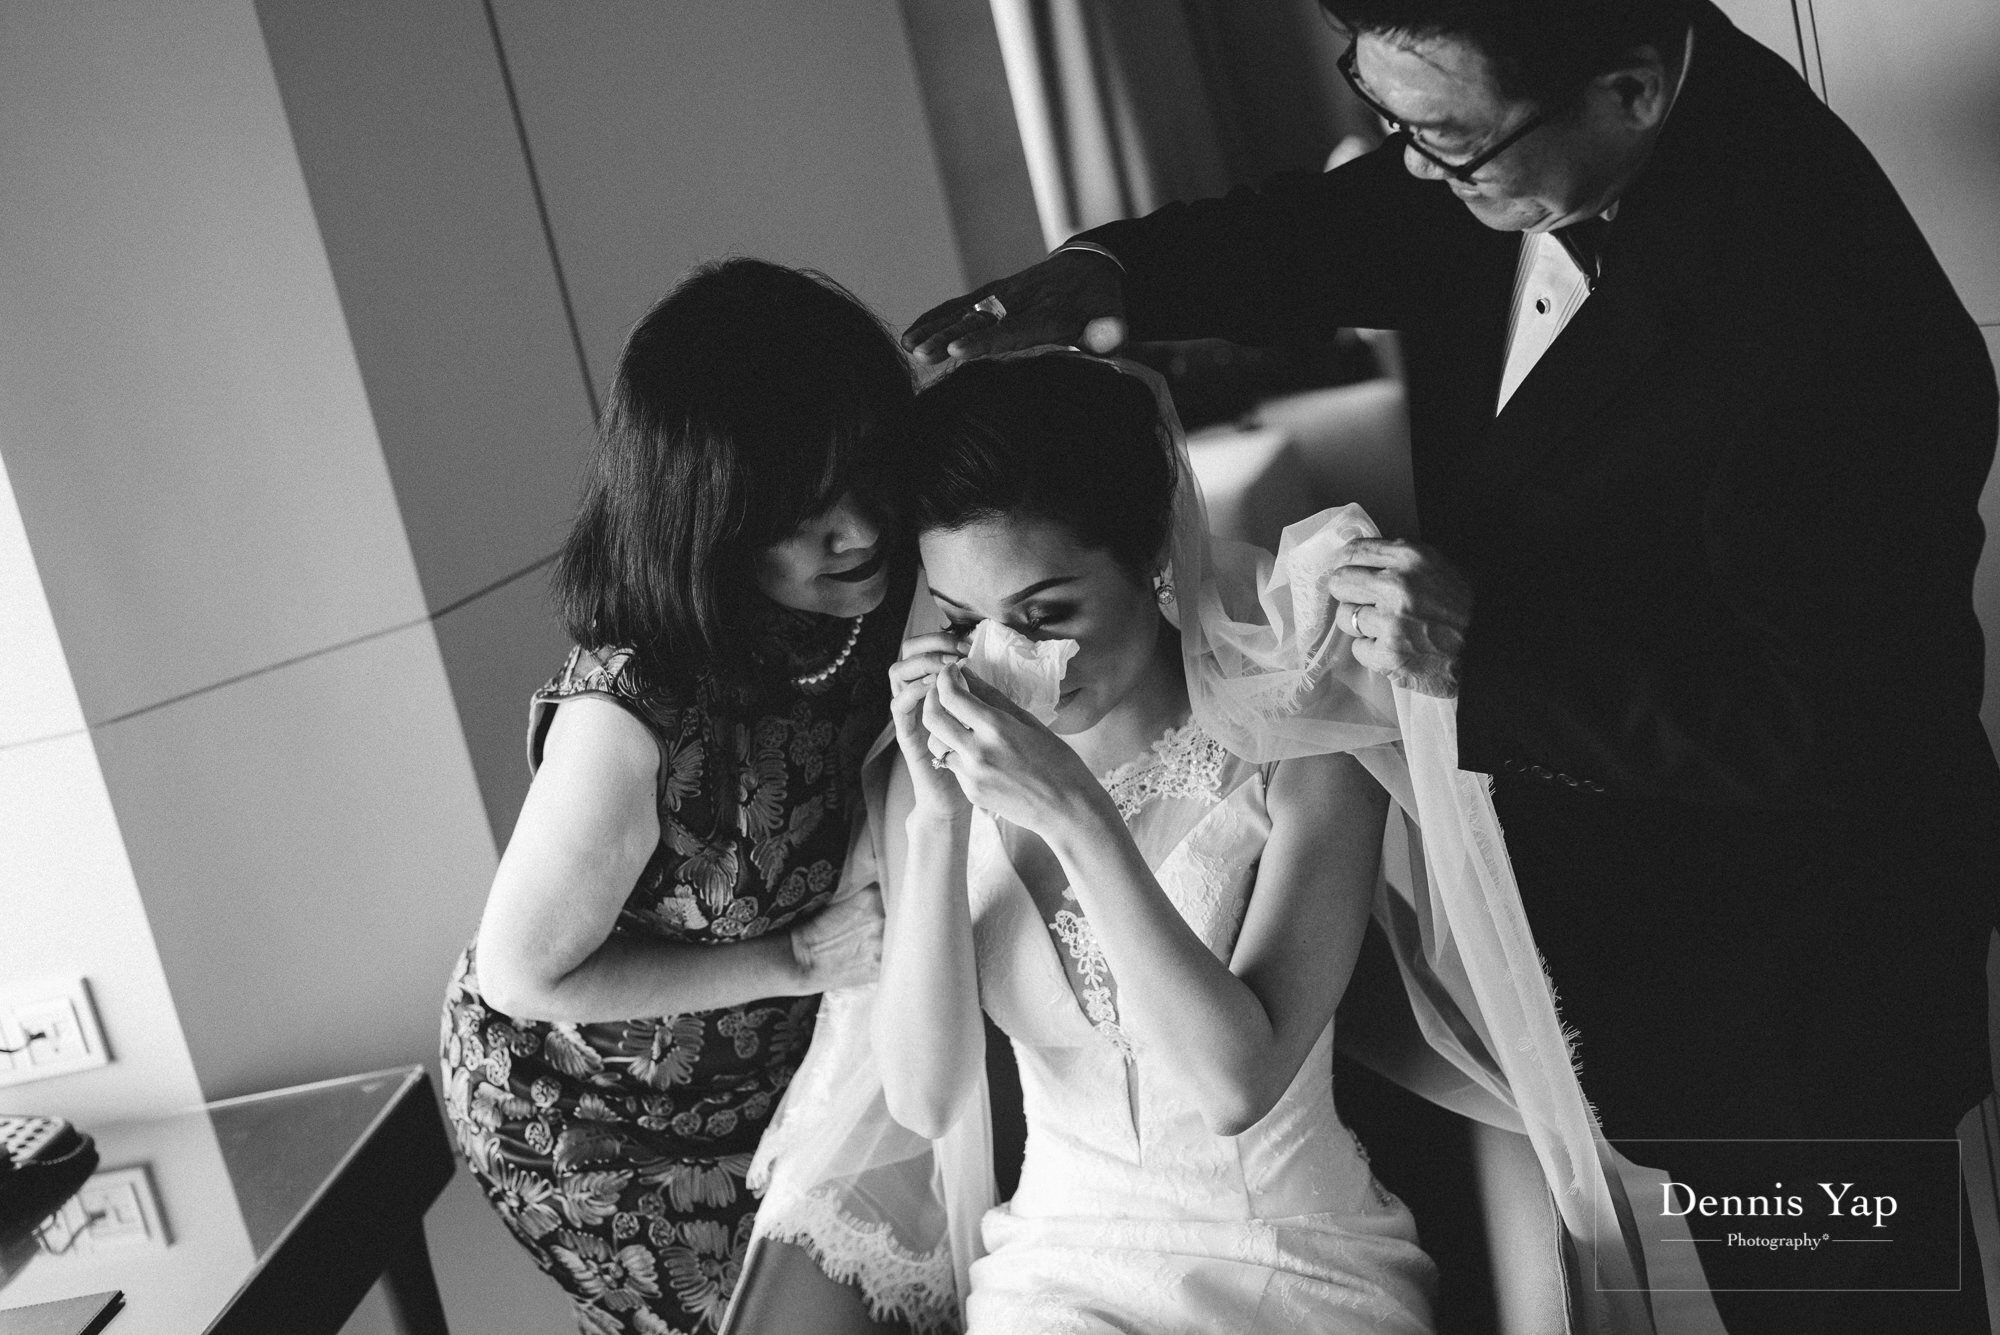 kevan khing wei wedding day hilton kuala lumpur vow exchange ceremony dennis yap photography malaysia top wedding photographer-9.jpg